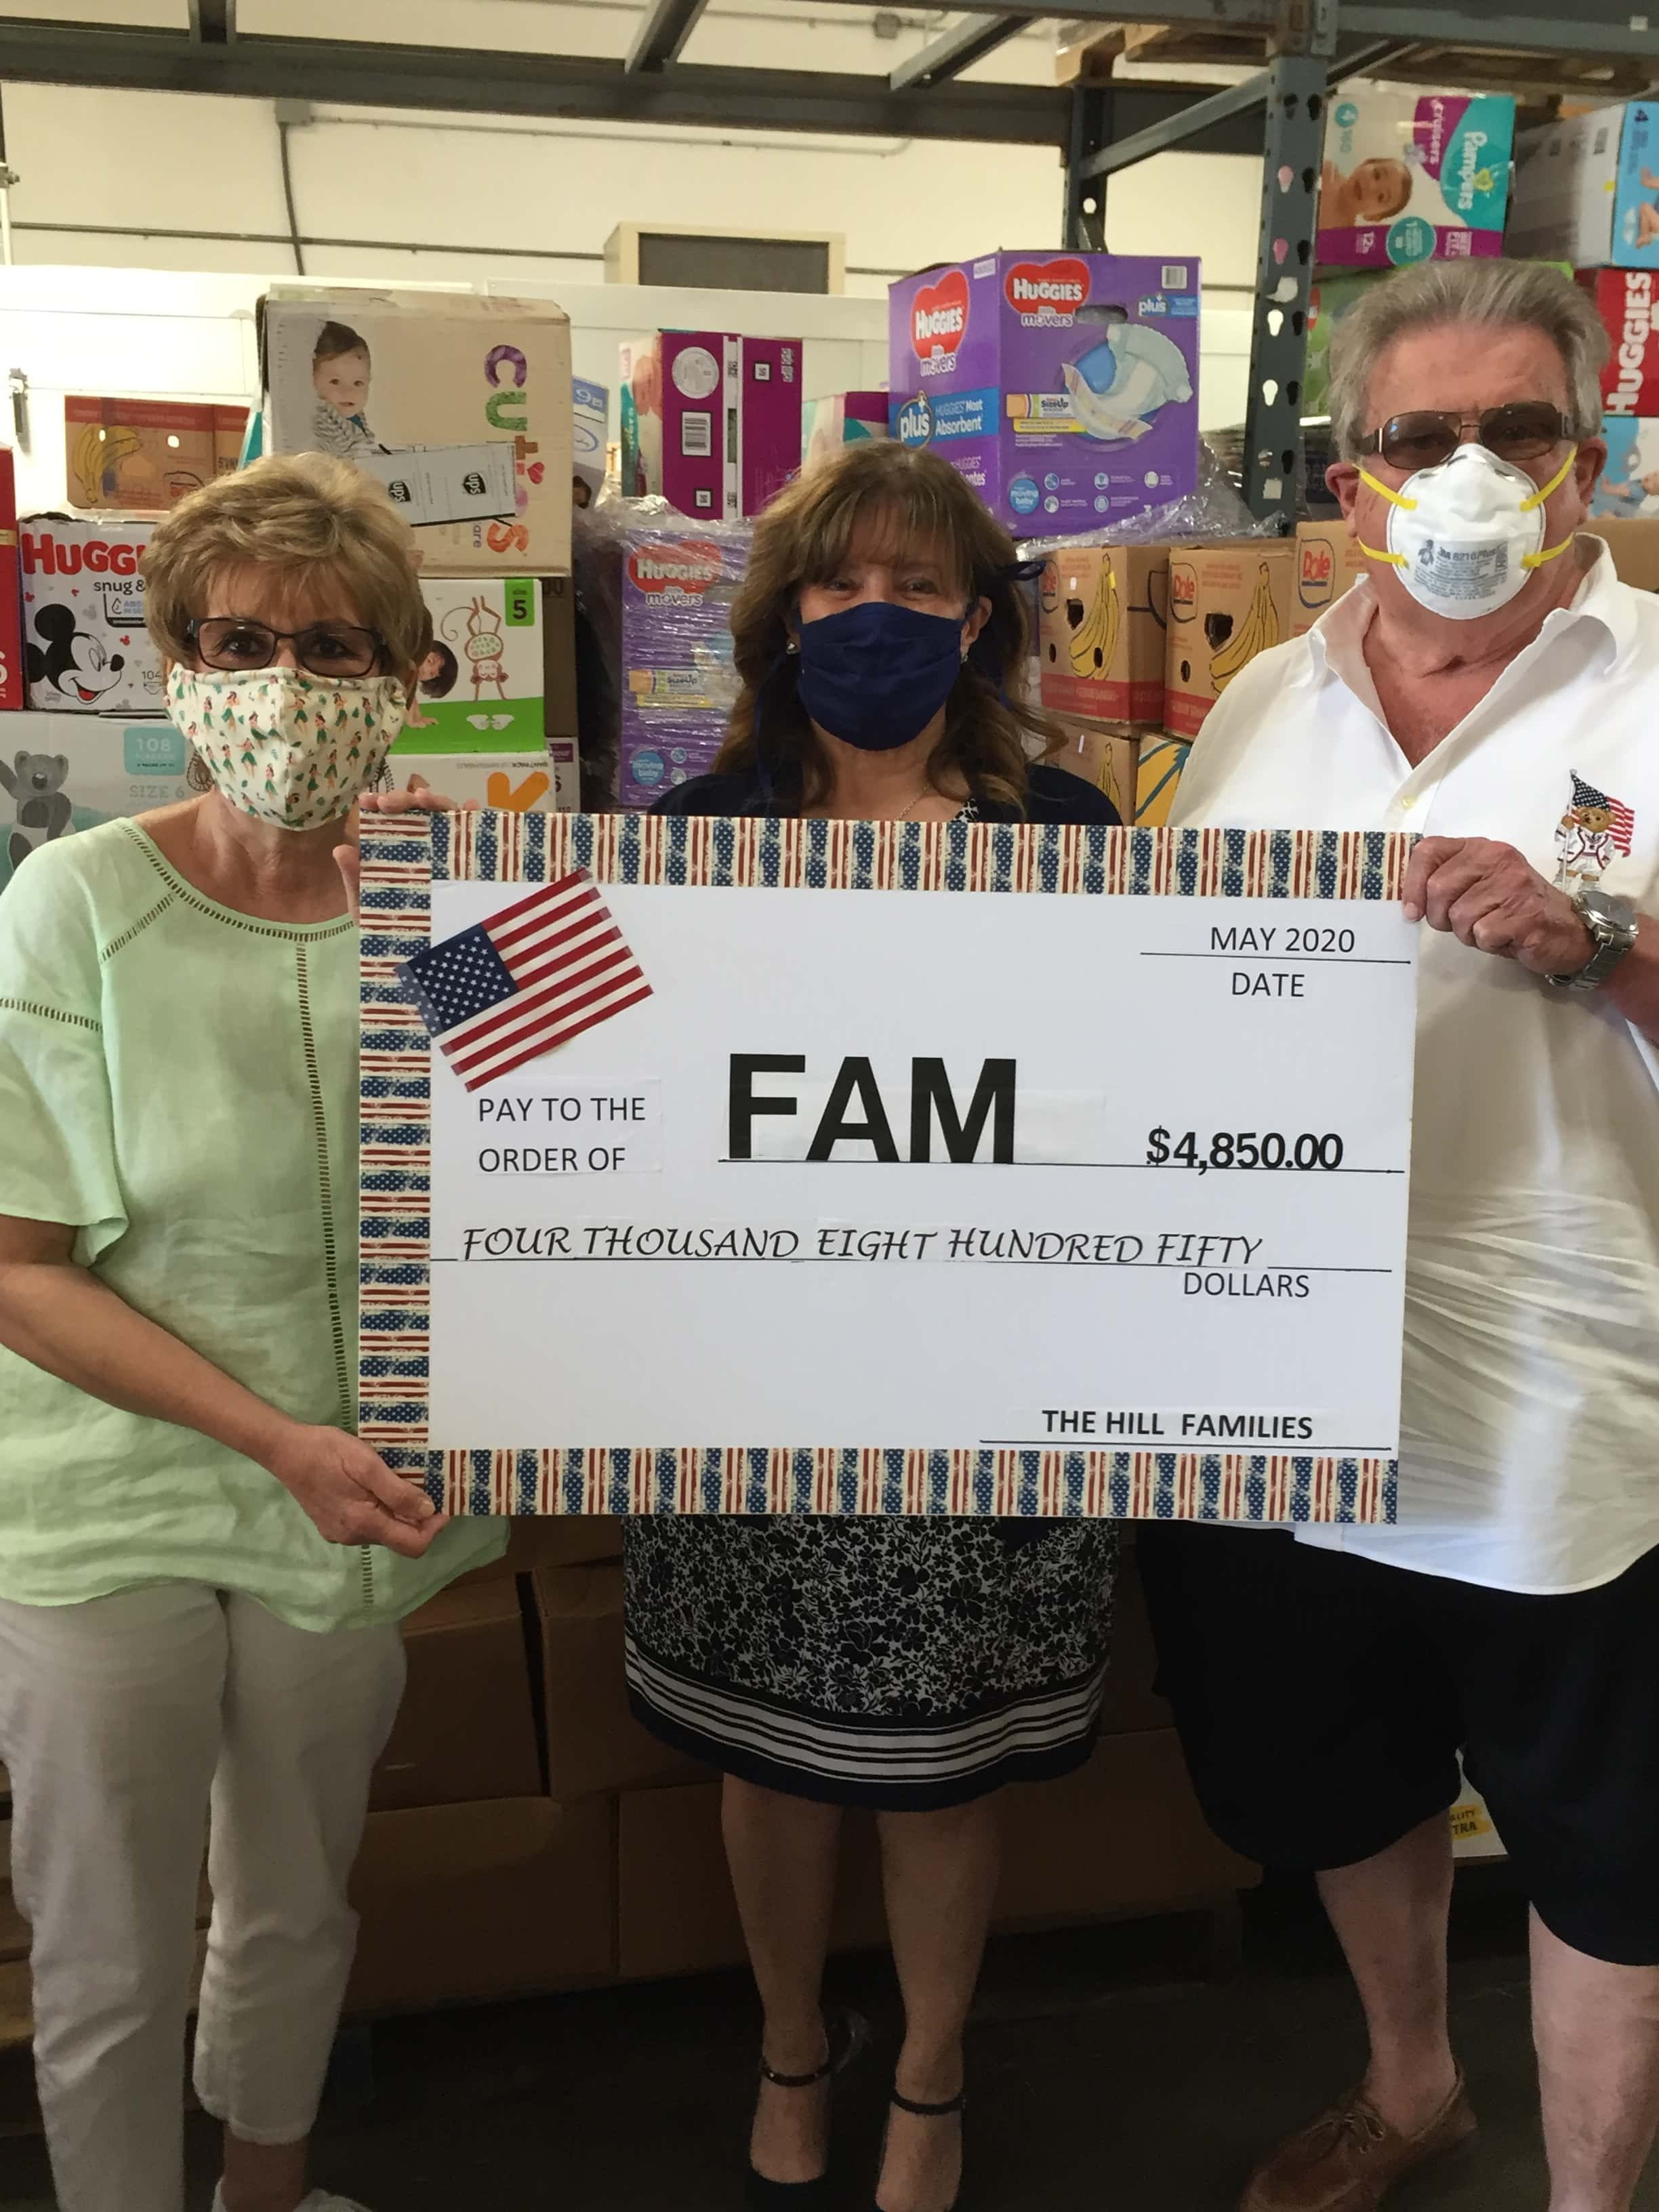 Doug and Janet Montandon present donation check to FAM organization